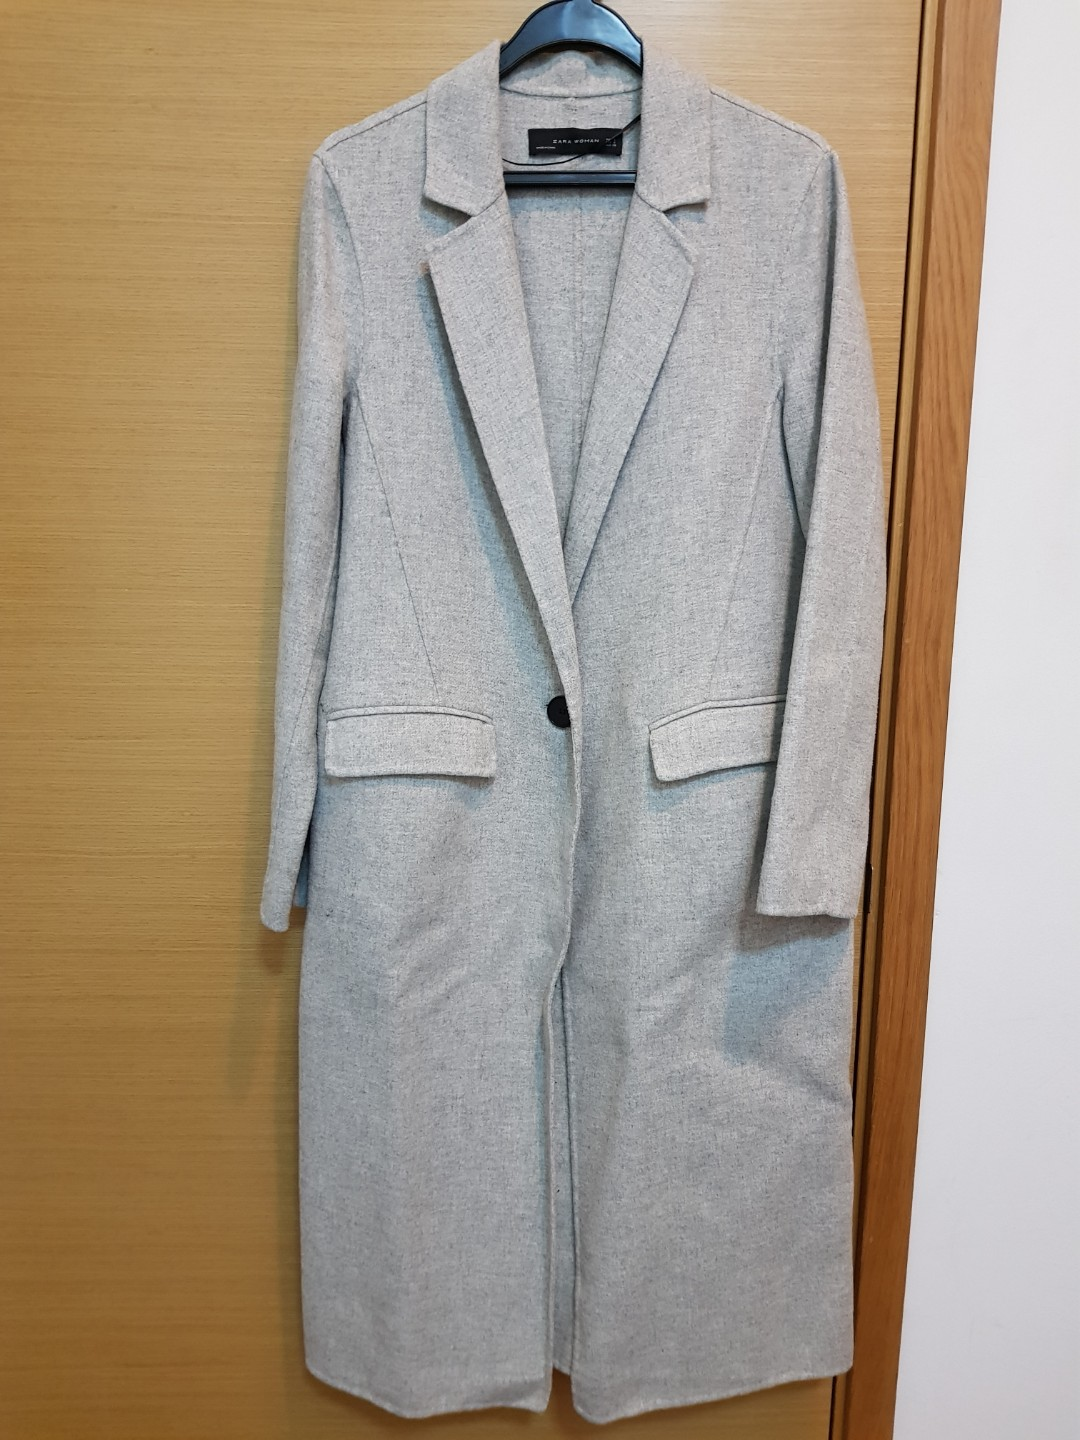 d2c3850f Zara Long Light Grey Coat, Women's Fashion, Clothes, Outerwear on ...